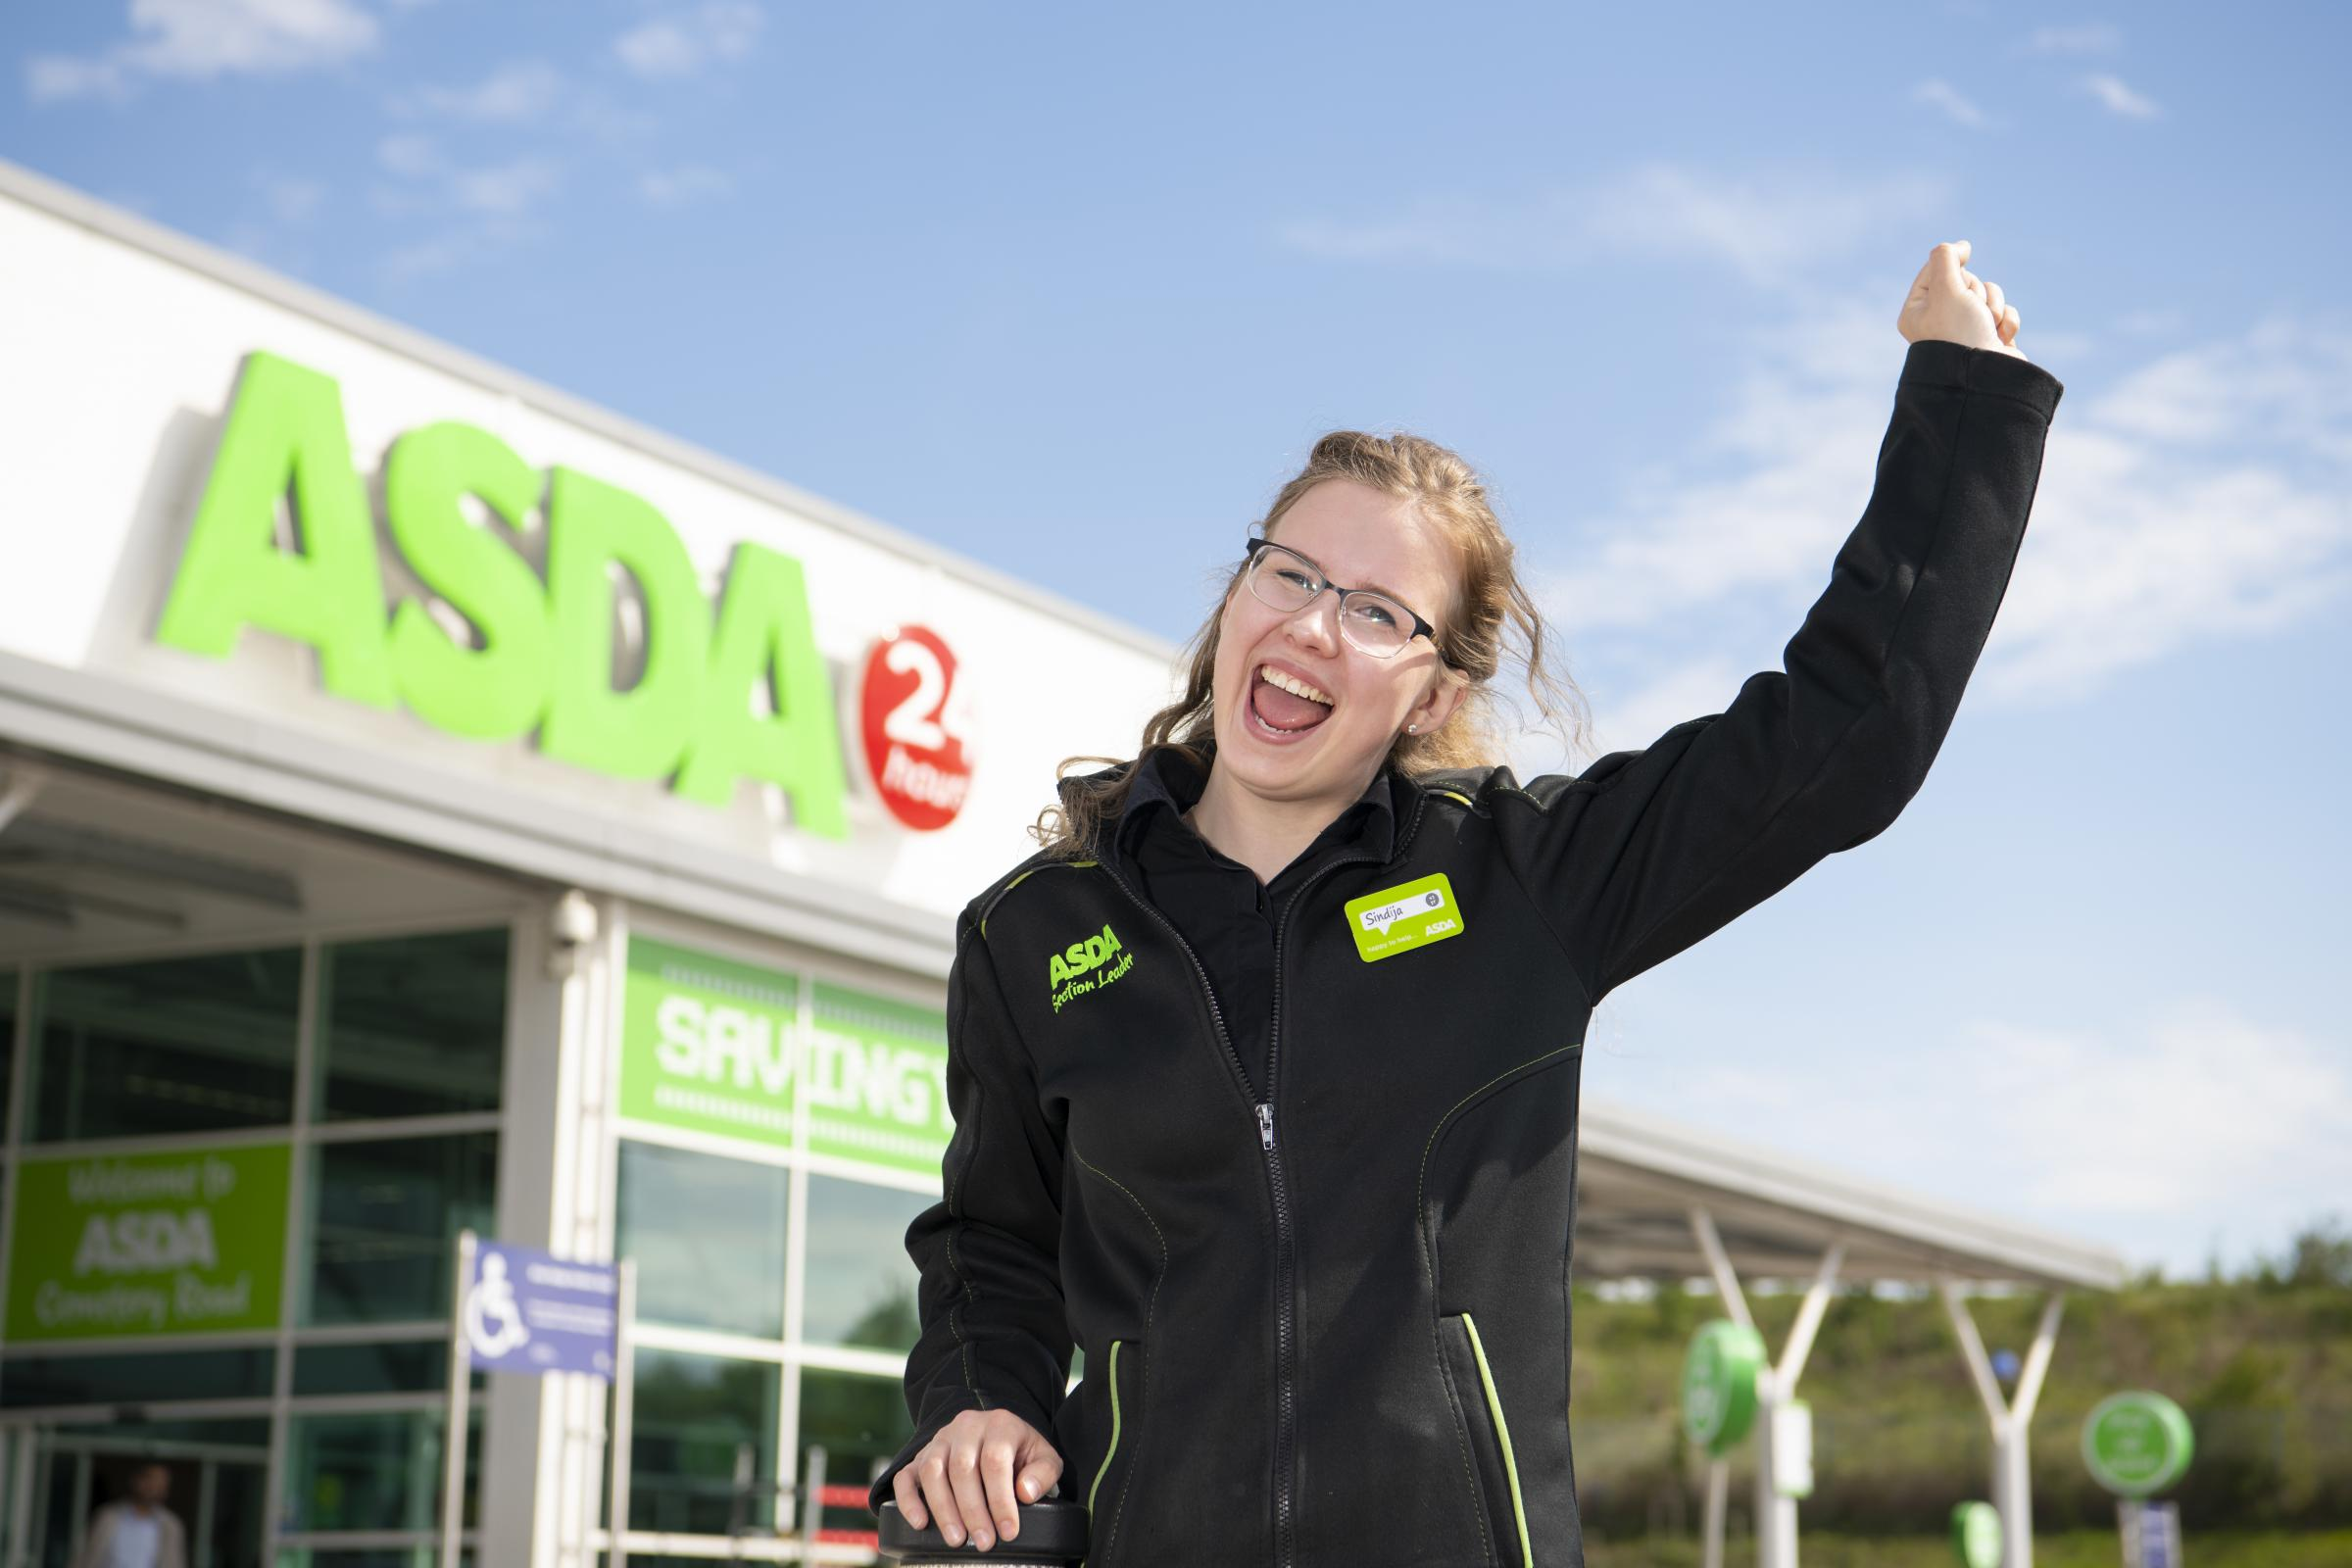 Sindija earns trip to US for top service at Asda in Bradford